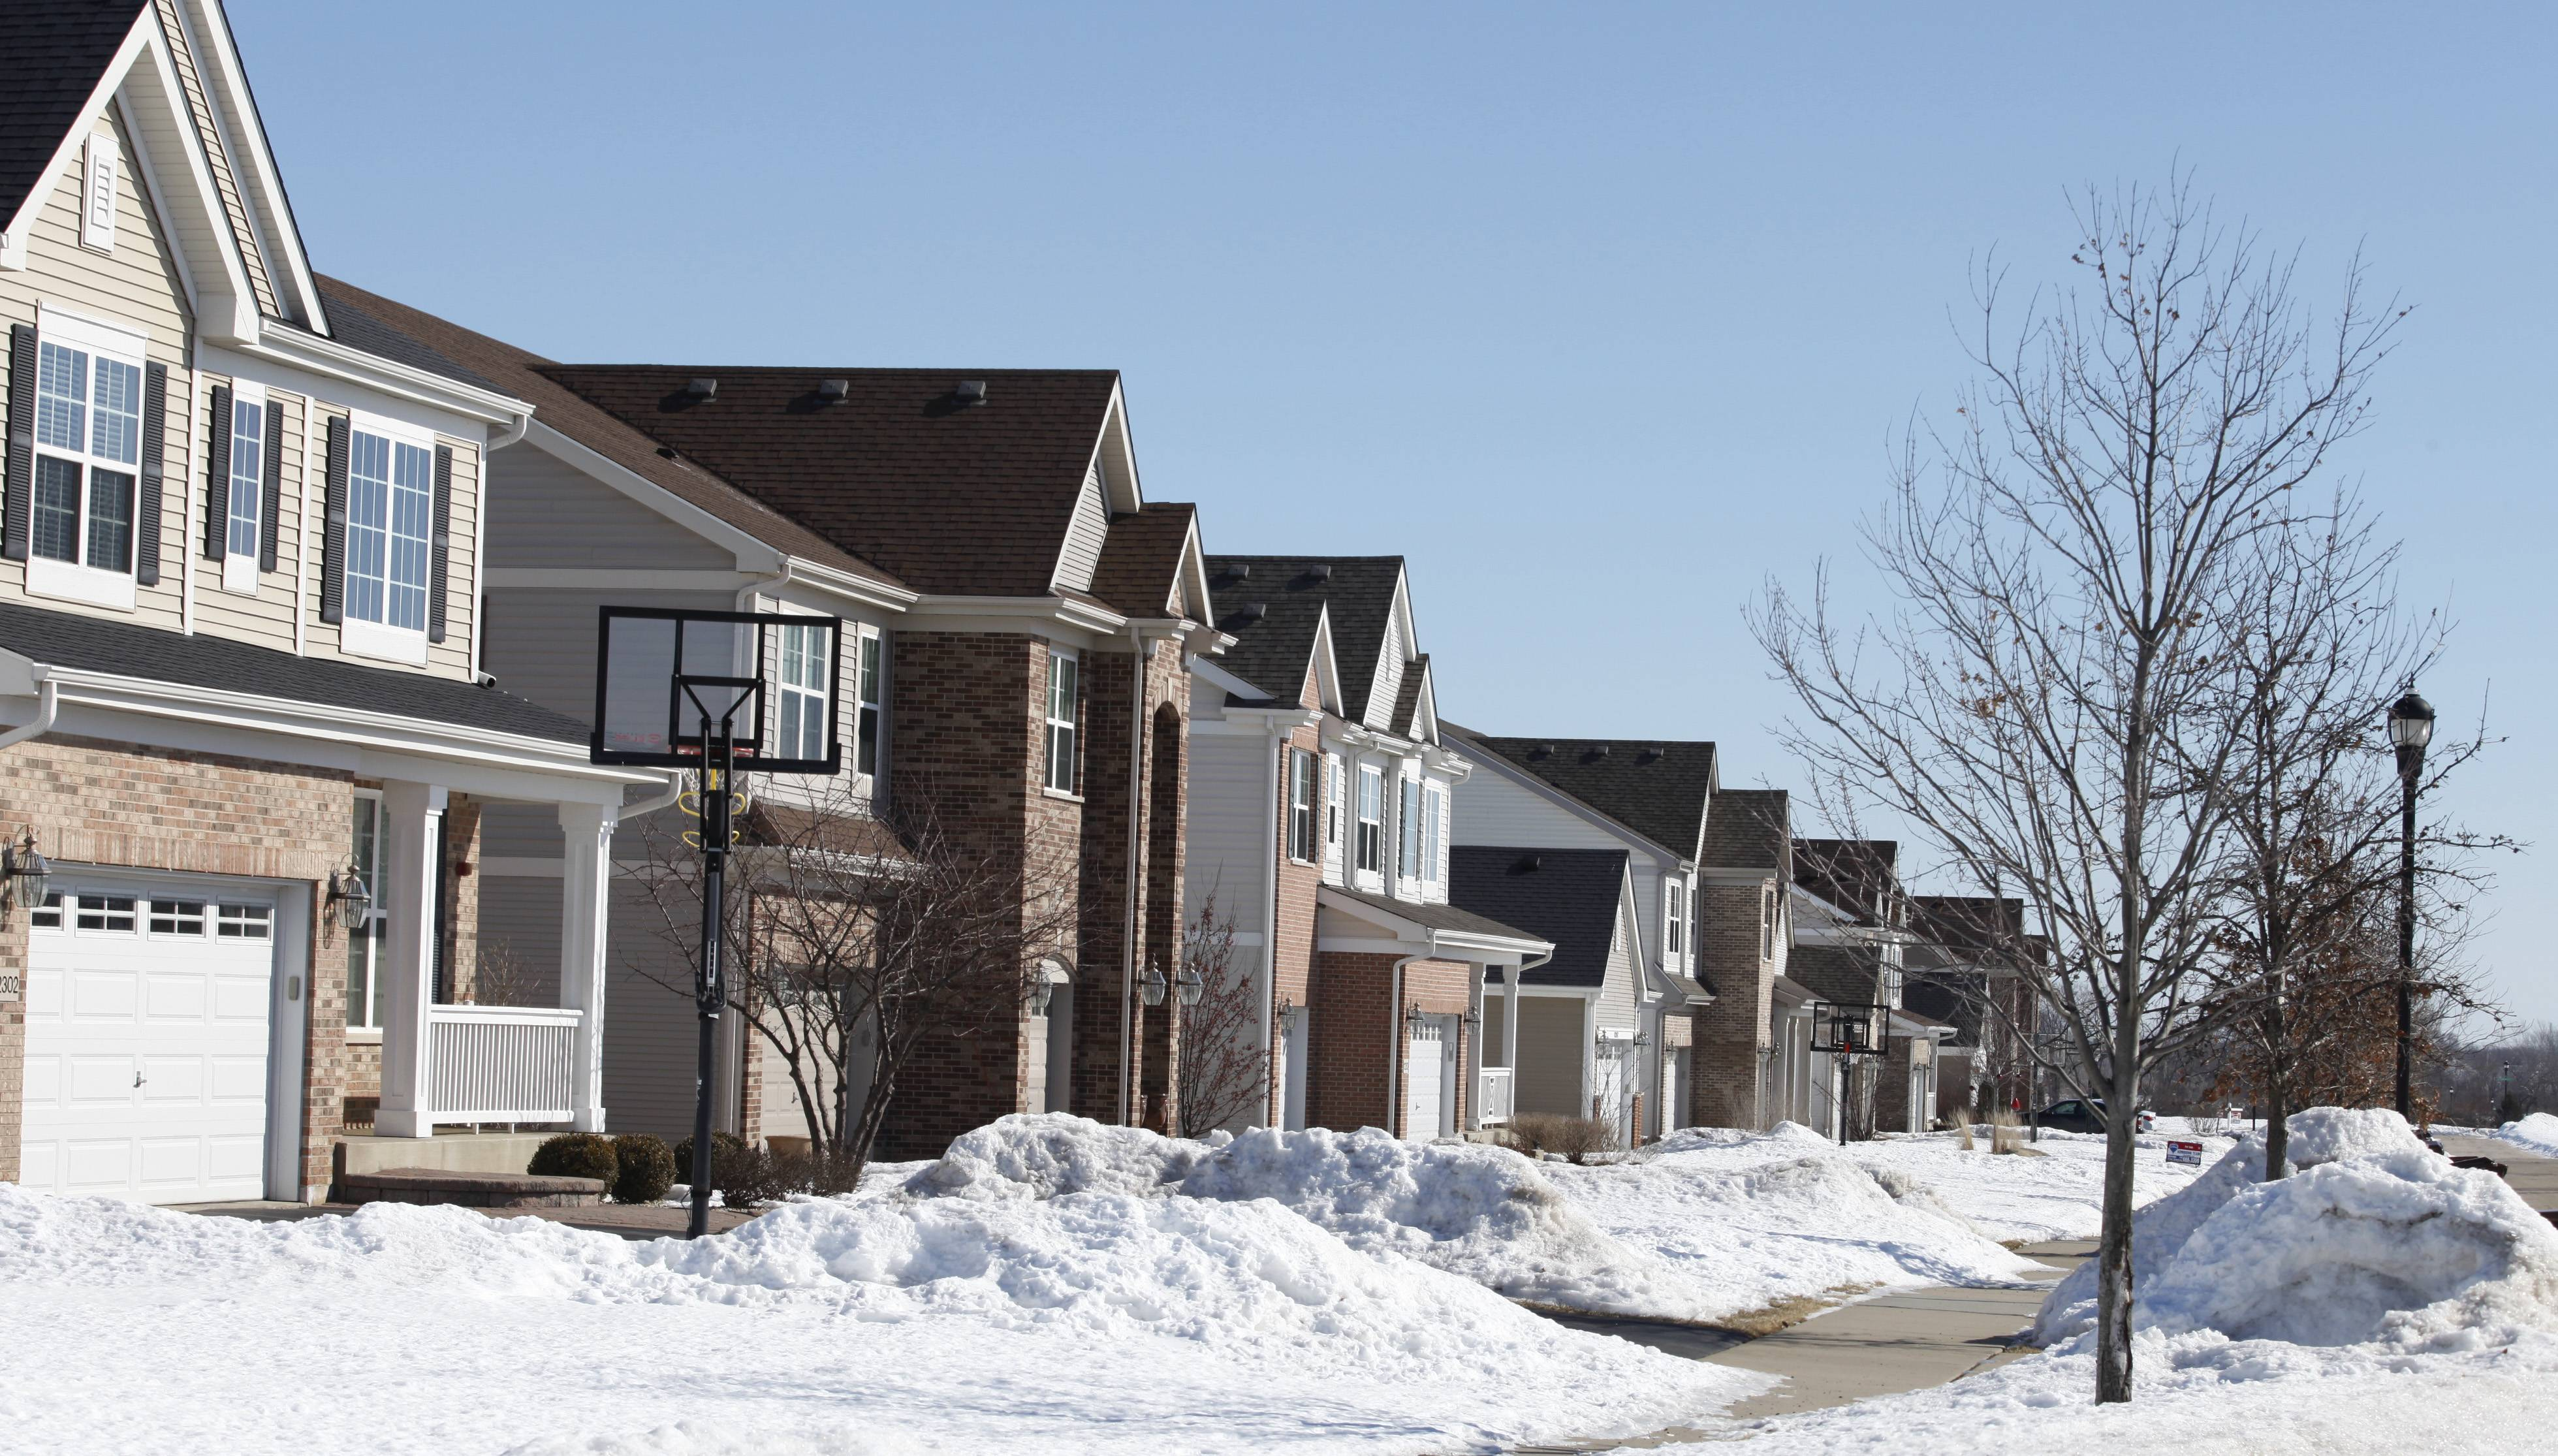 Newer homes along Donahue Drive highlight the building boom that has helped Huntley in recent years. The village ranked No. 1 on NerdWallet.com's list of best places for homeownership in Illinois.